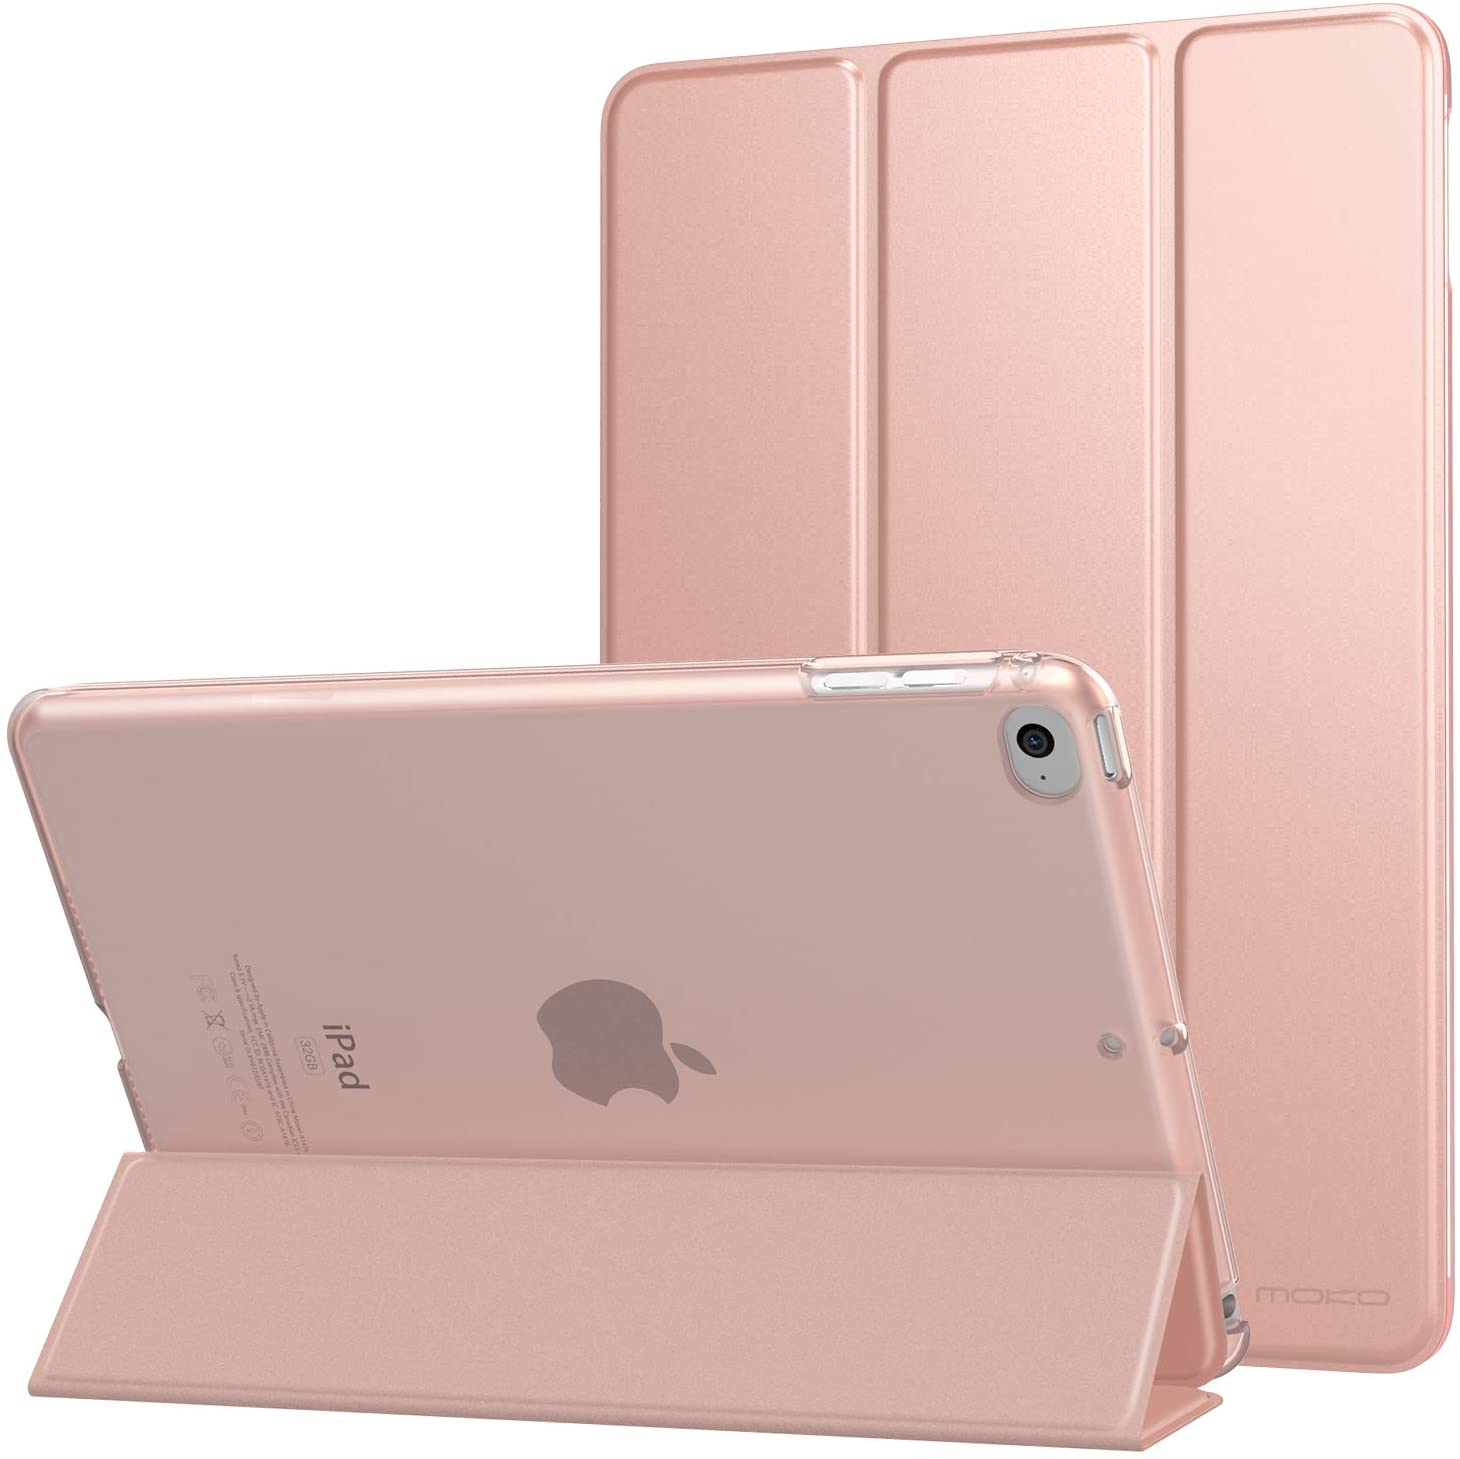 MoKo Case Fit New iPad Mini 5 2019 (5th Generation 7.9 inch) - Slim Lightweight Smart Shell Stand Cover with Translucent Frosted Back Protector, with Auto Wake/Sleep - Rose Gold